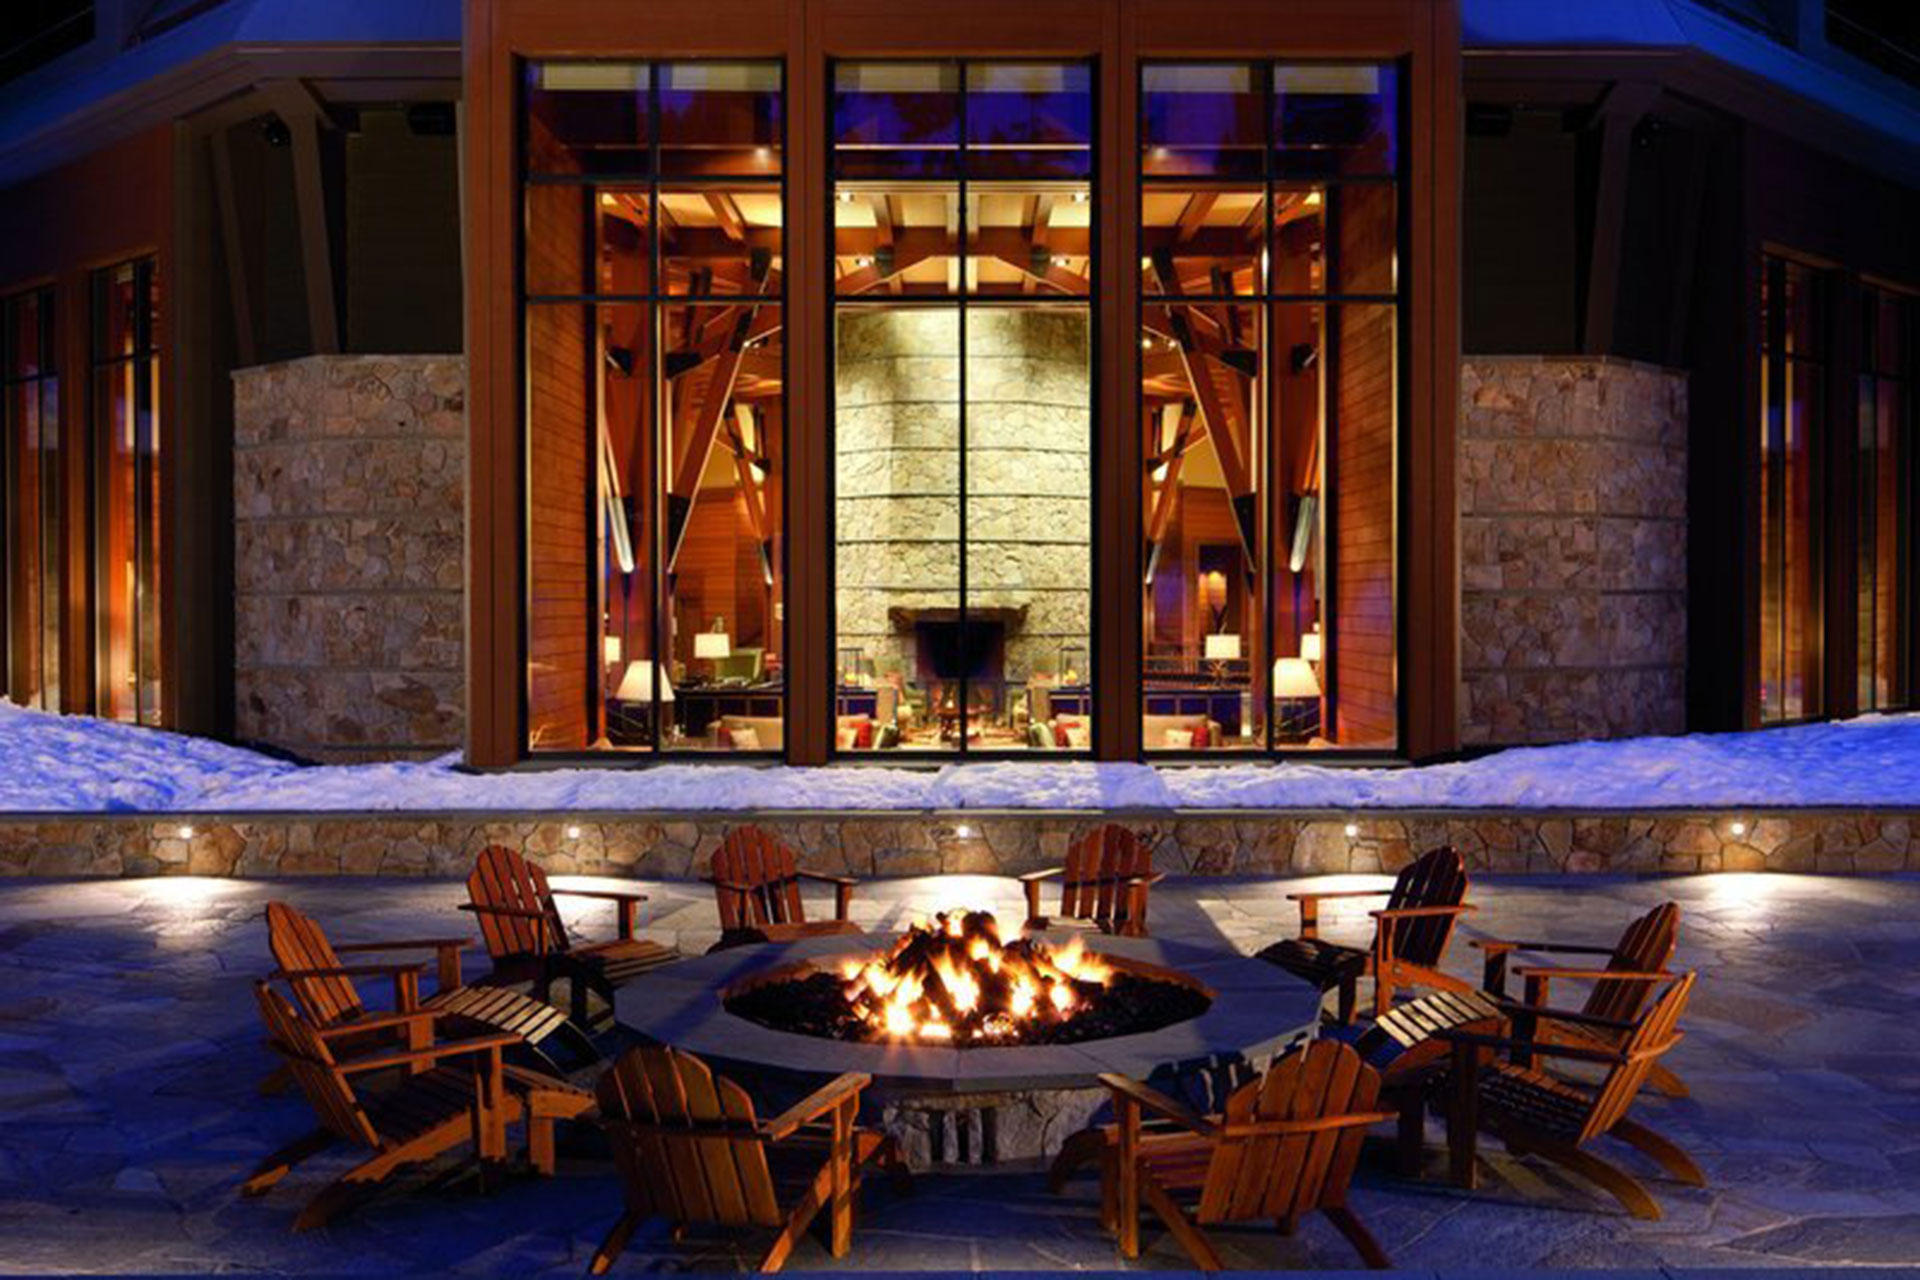 Fire Pit at The Ritz-Carlton, Lake Tahoe; Courtesy of The Ritz-Carlton Lake Tahoe